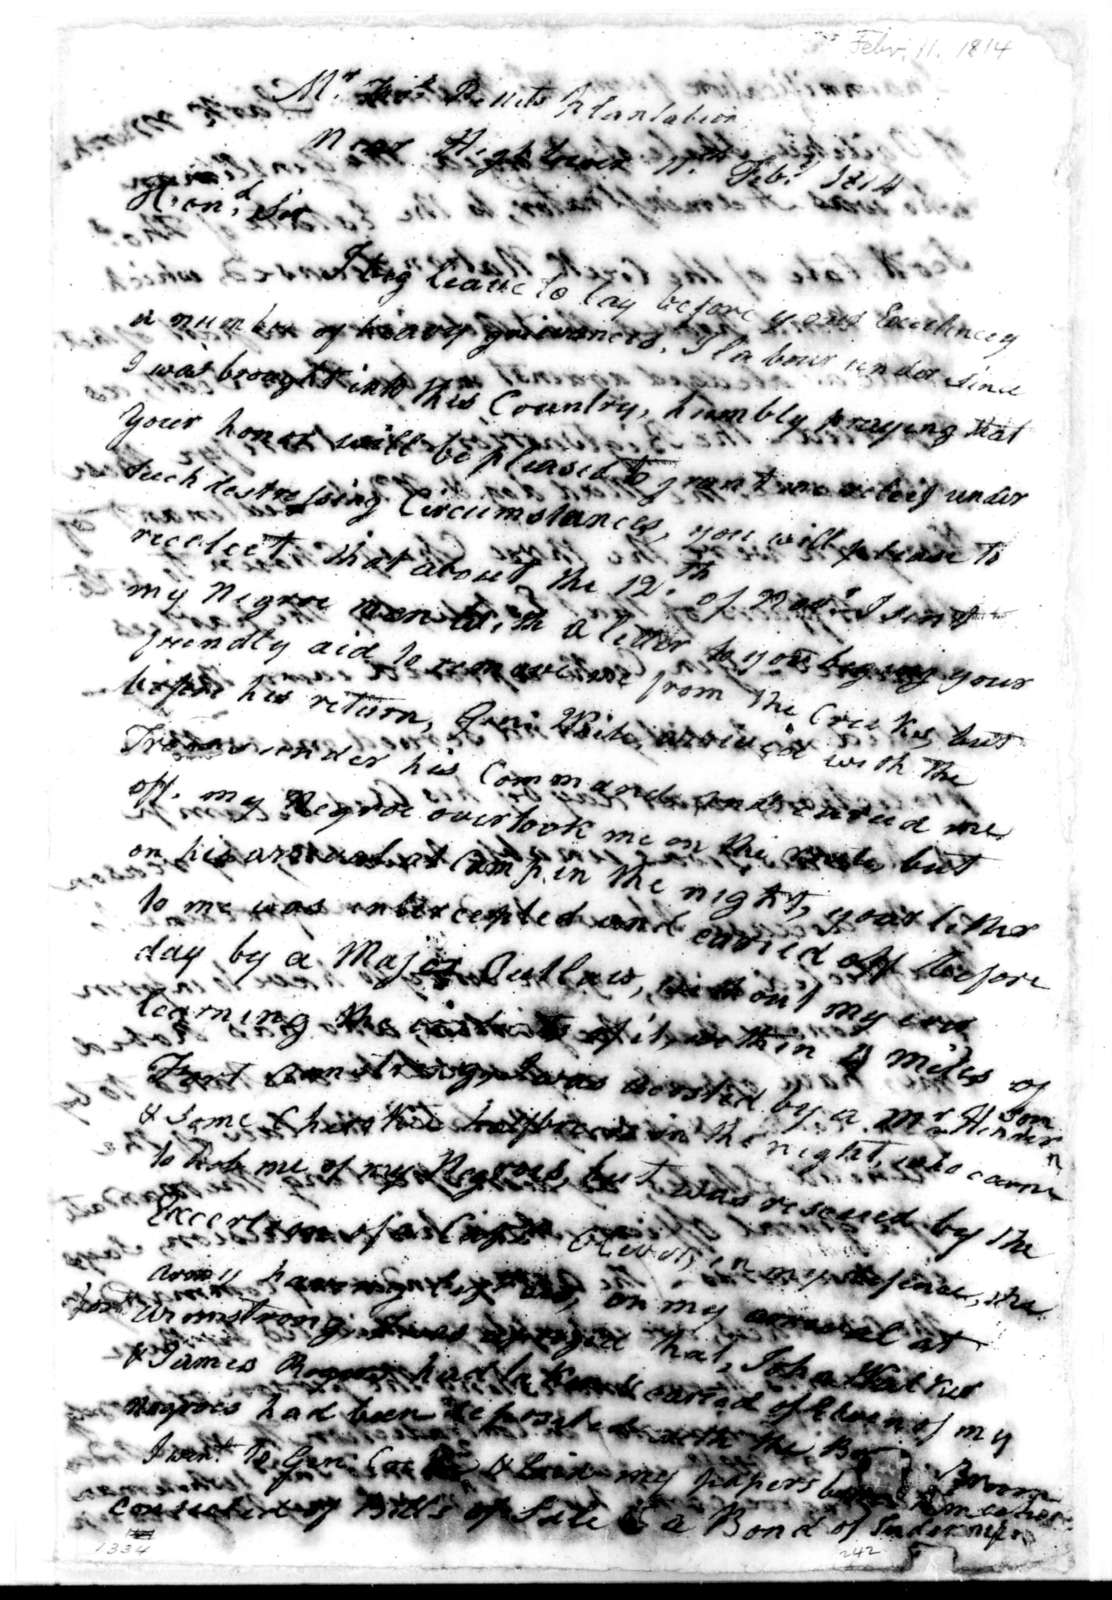 Robert Grierson to Andrew Jackson, February 11, 1814